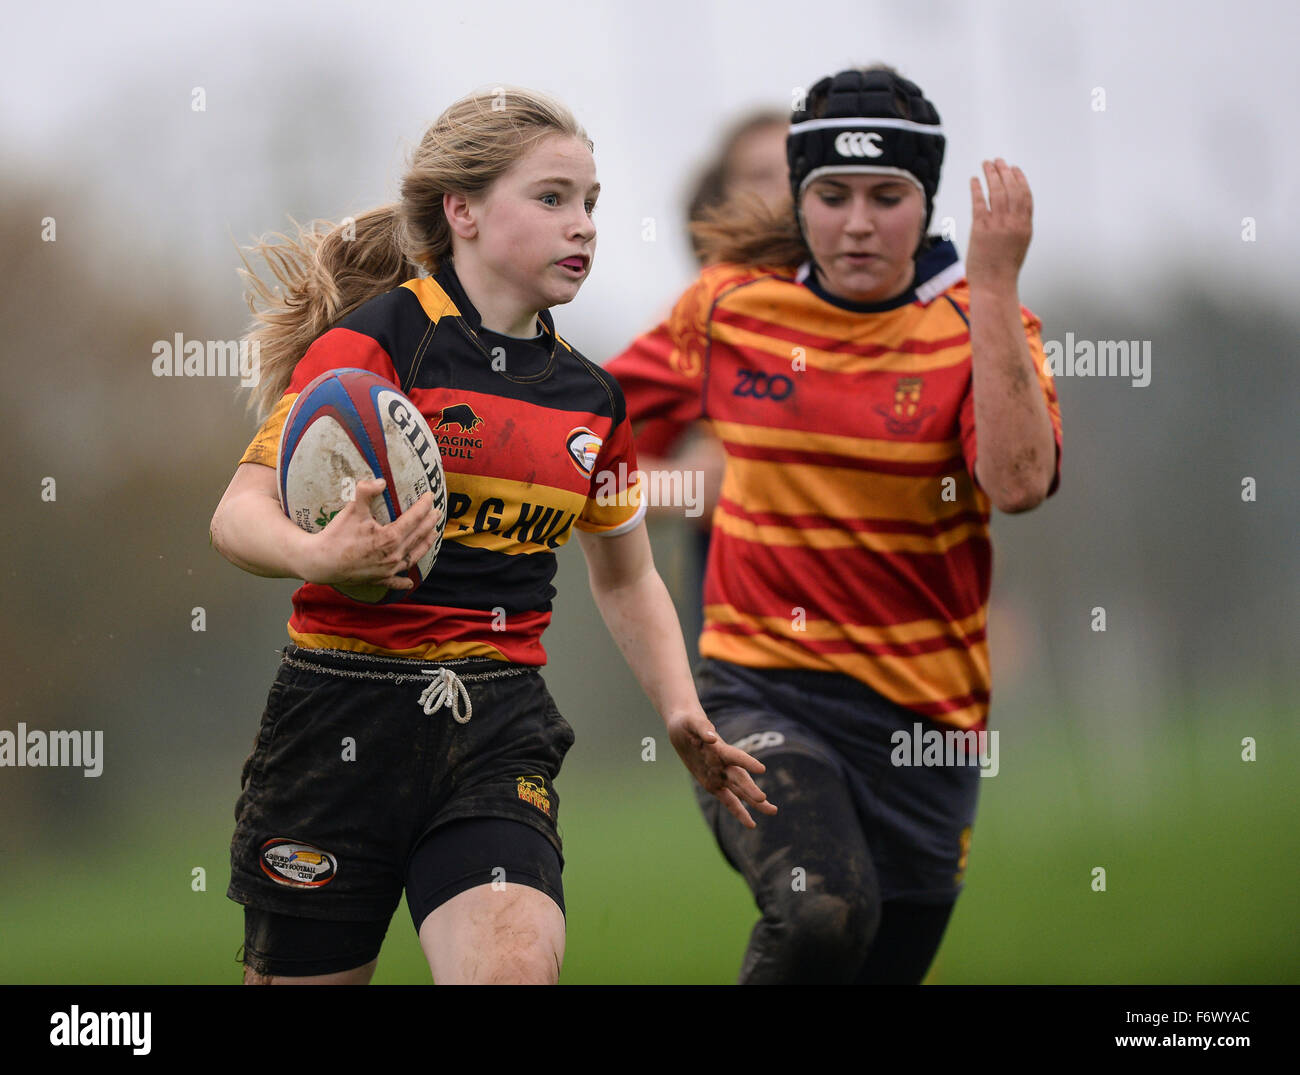 Women's Sports participants. Ashford Rugby Club, 8 novembre 2015 Photo Stock